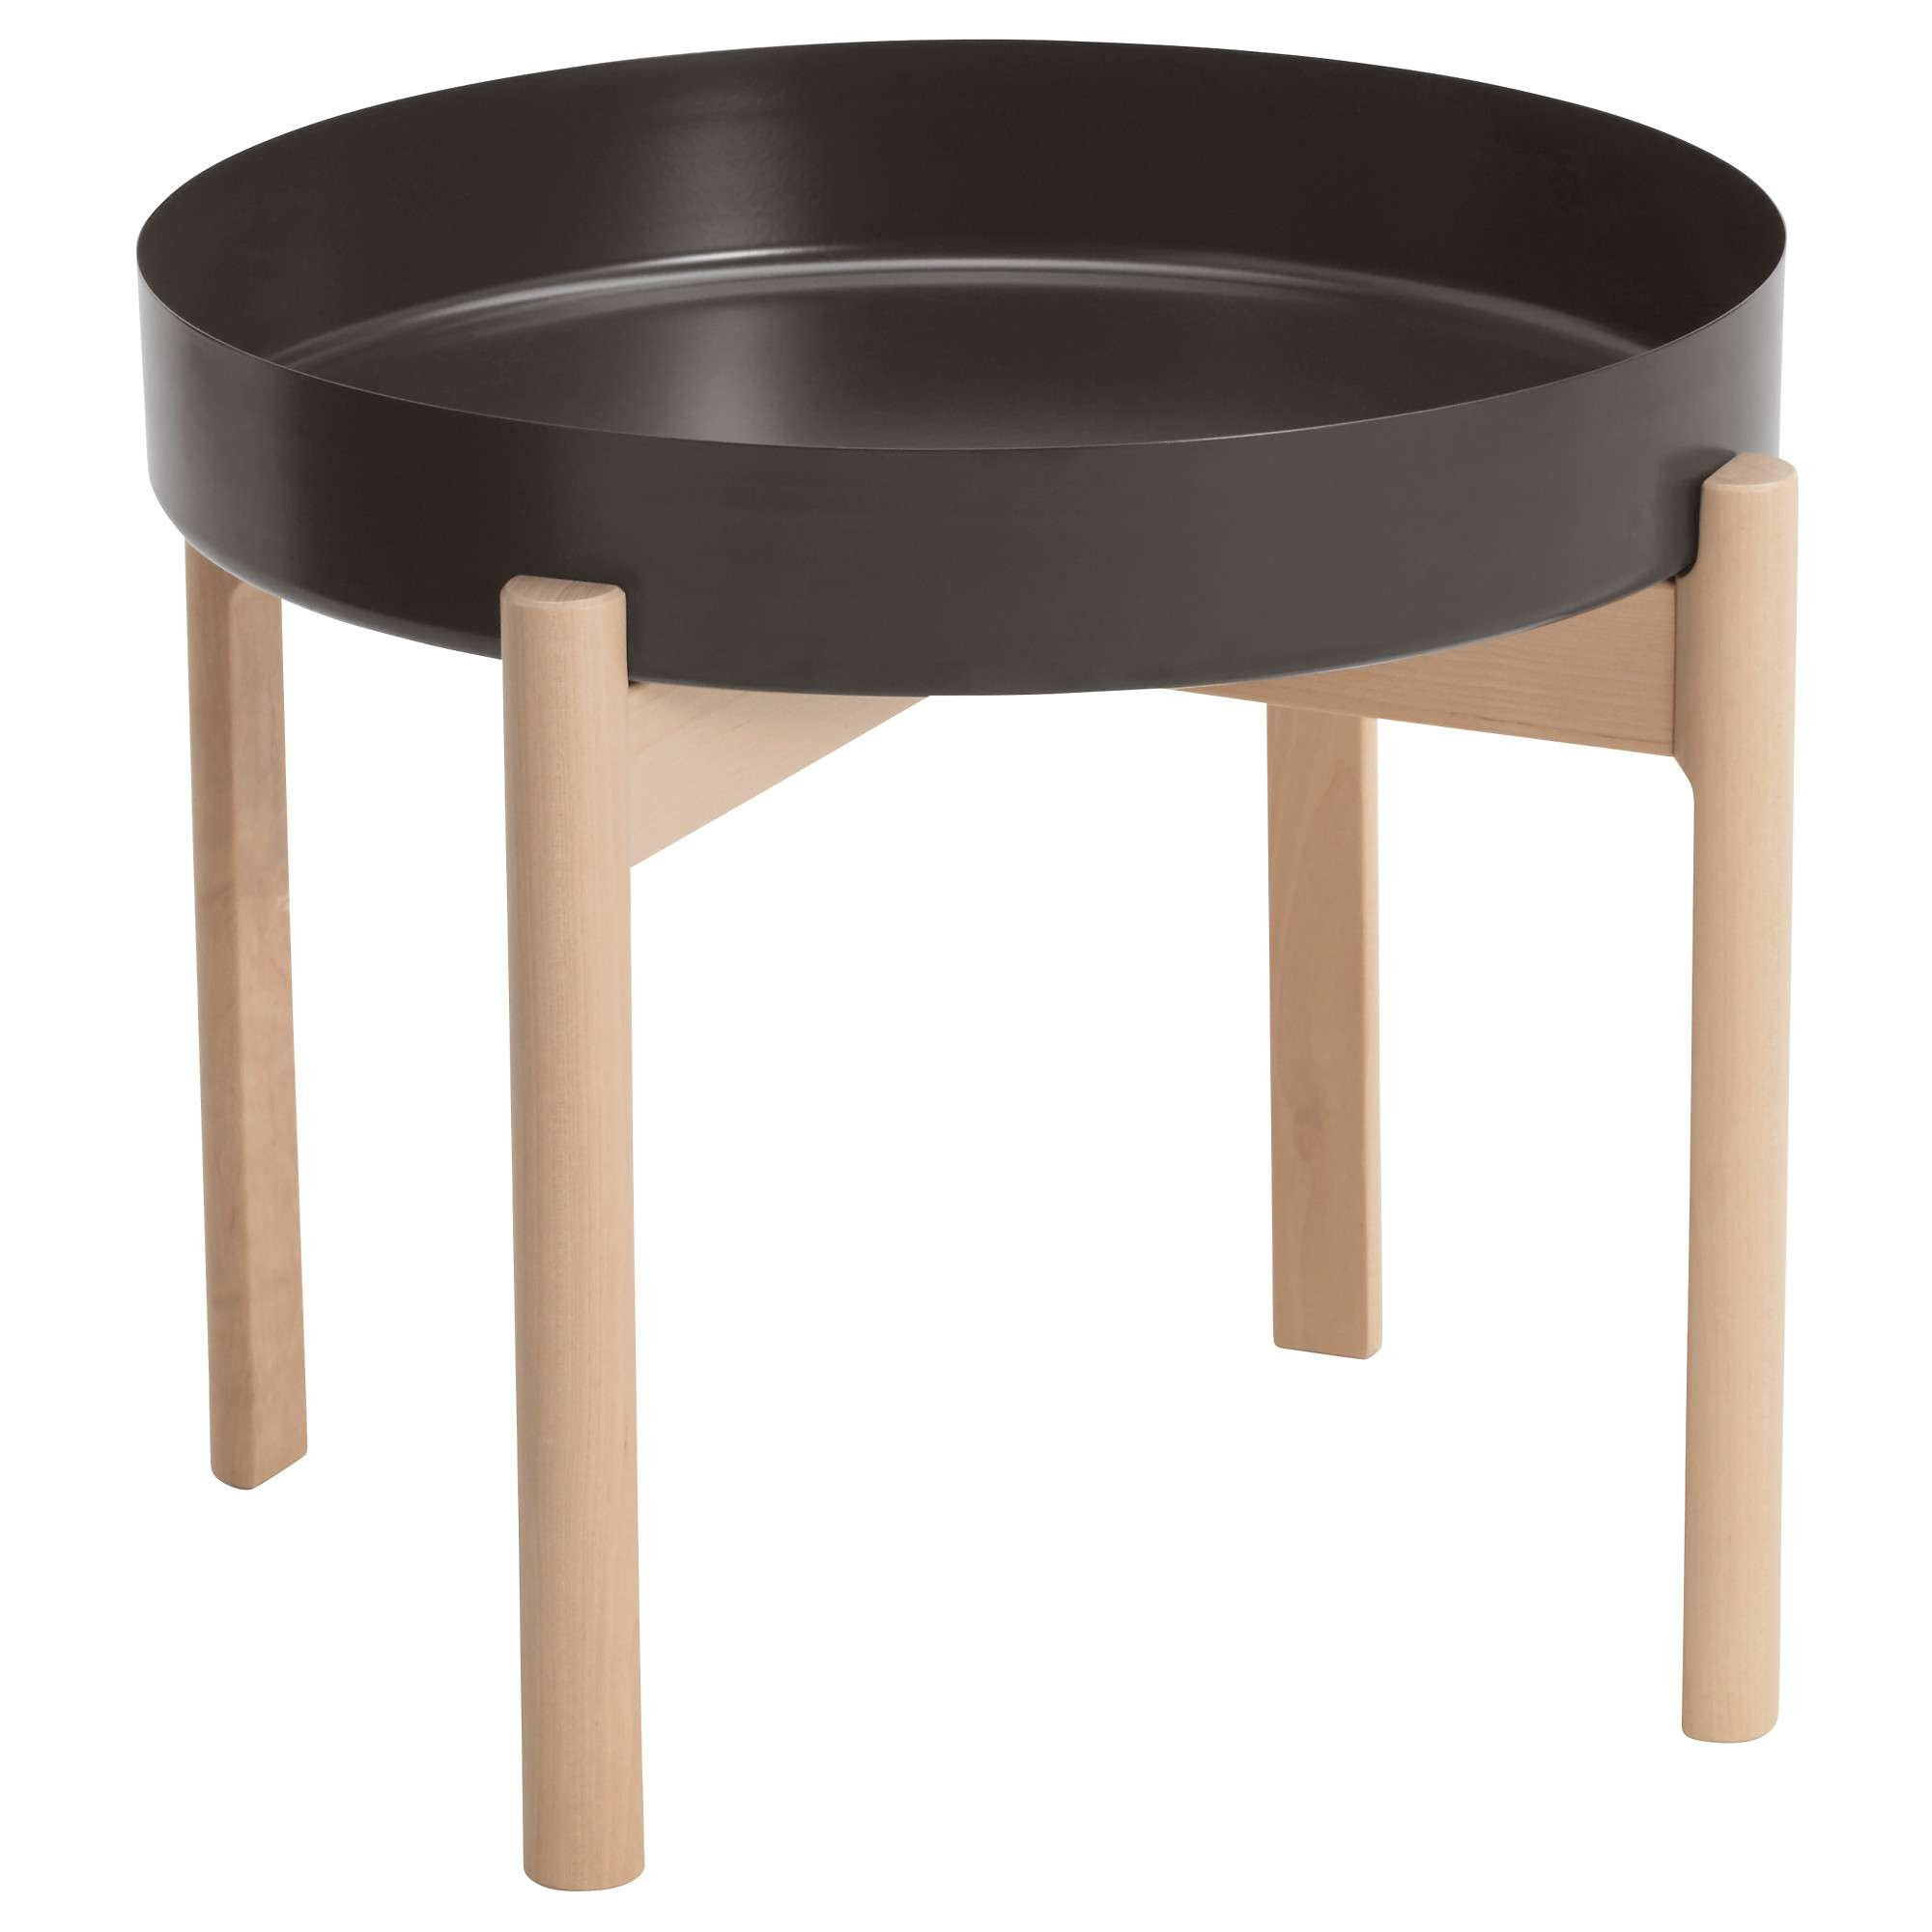 Ypperlig Coffee Table Dark Grey/birch 50 Cm – Ikea With 2017 Birch Coffee Tables (View 10 of 20)